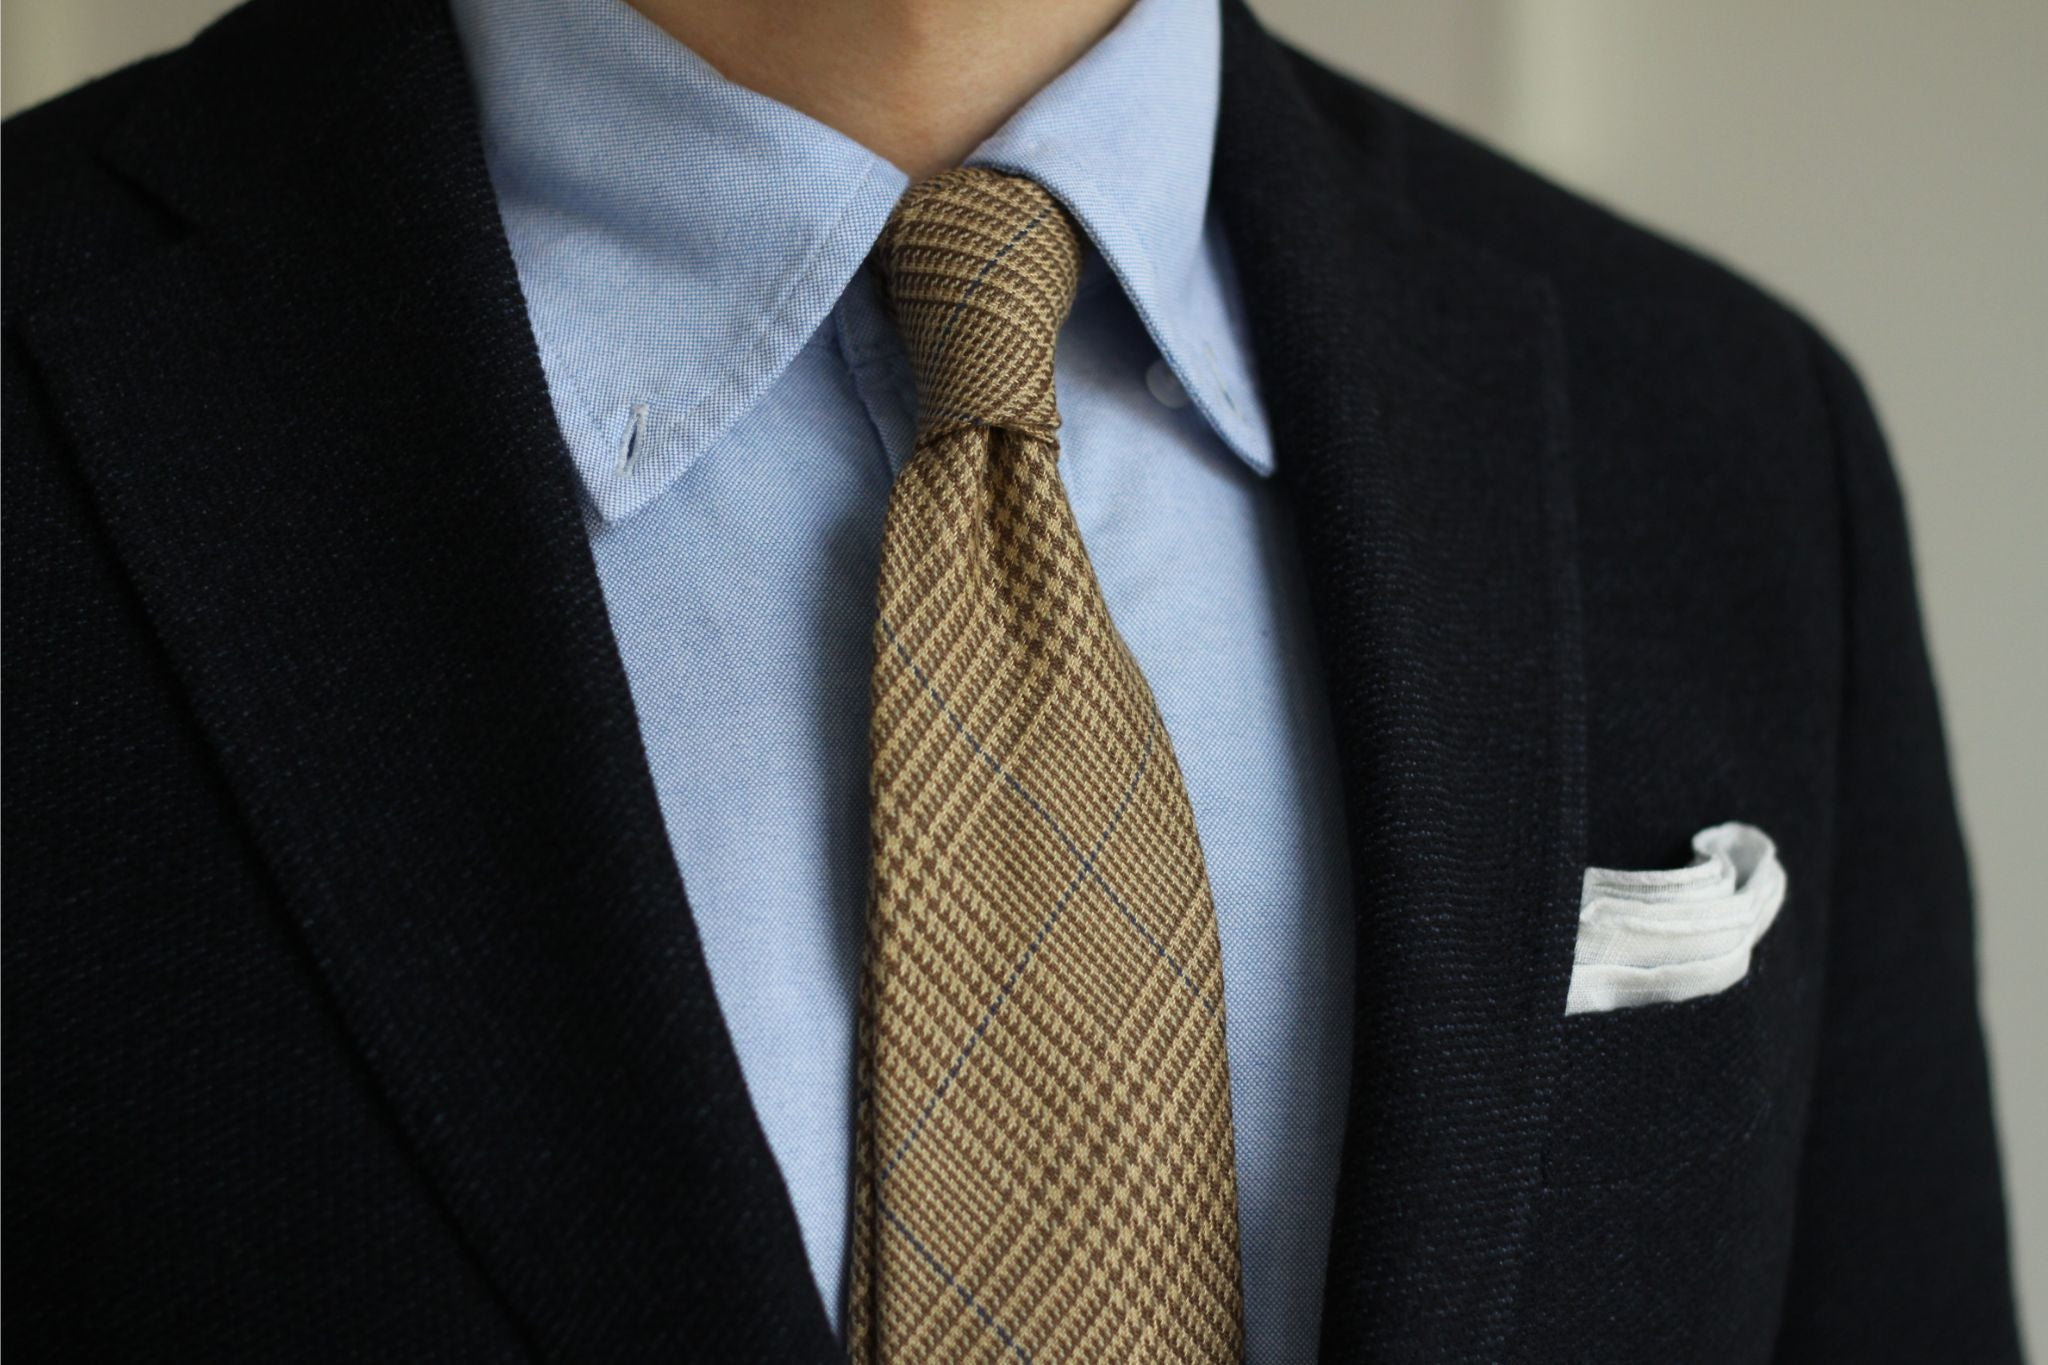 Prince of Wales wool tie